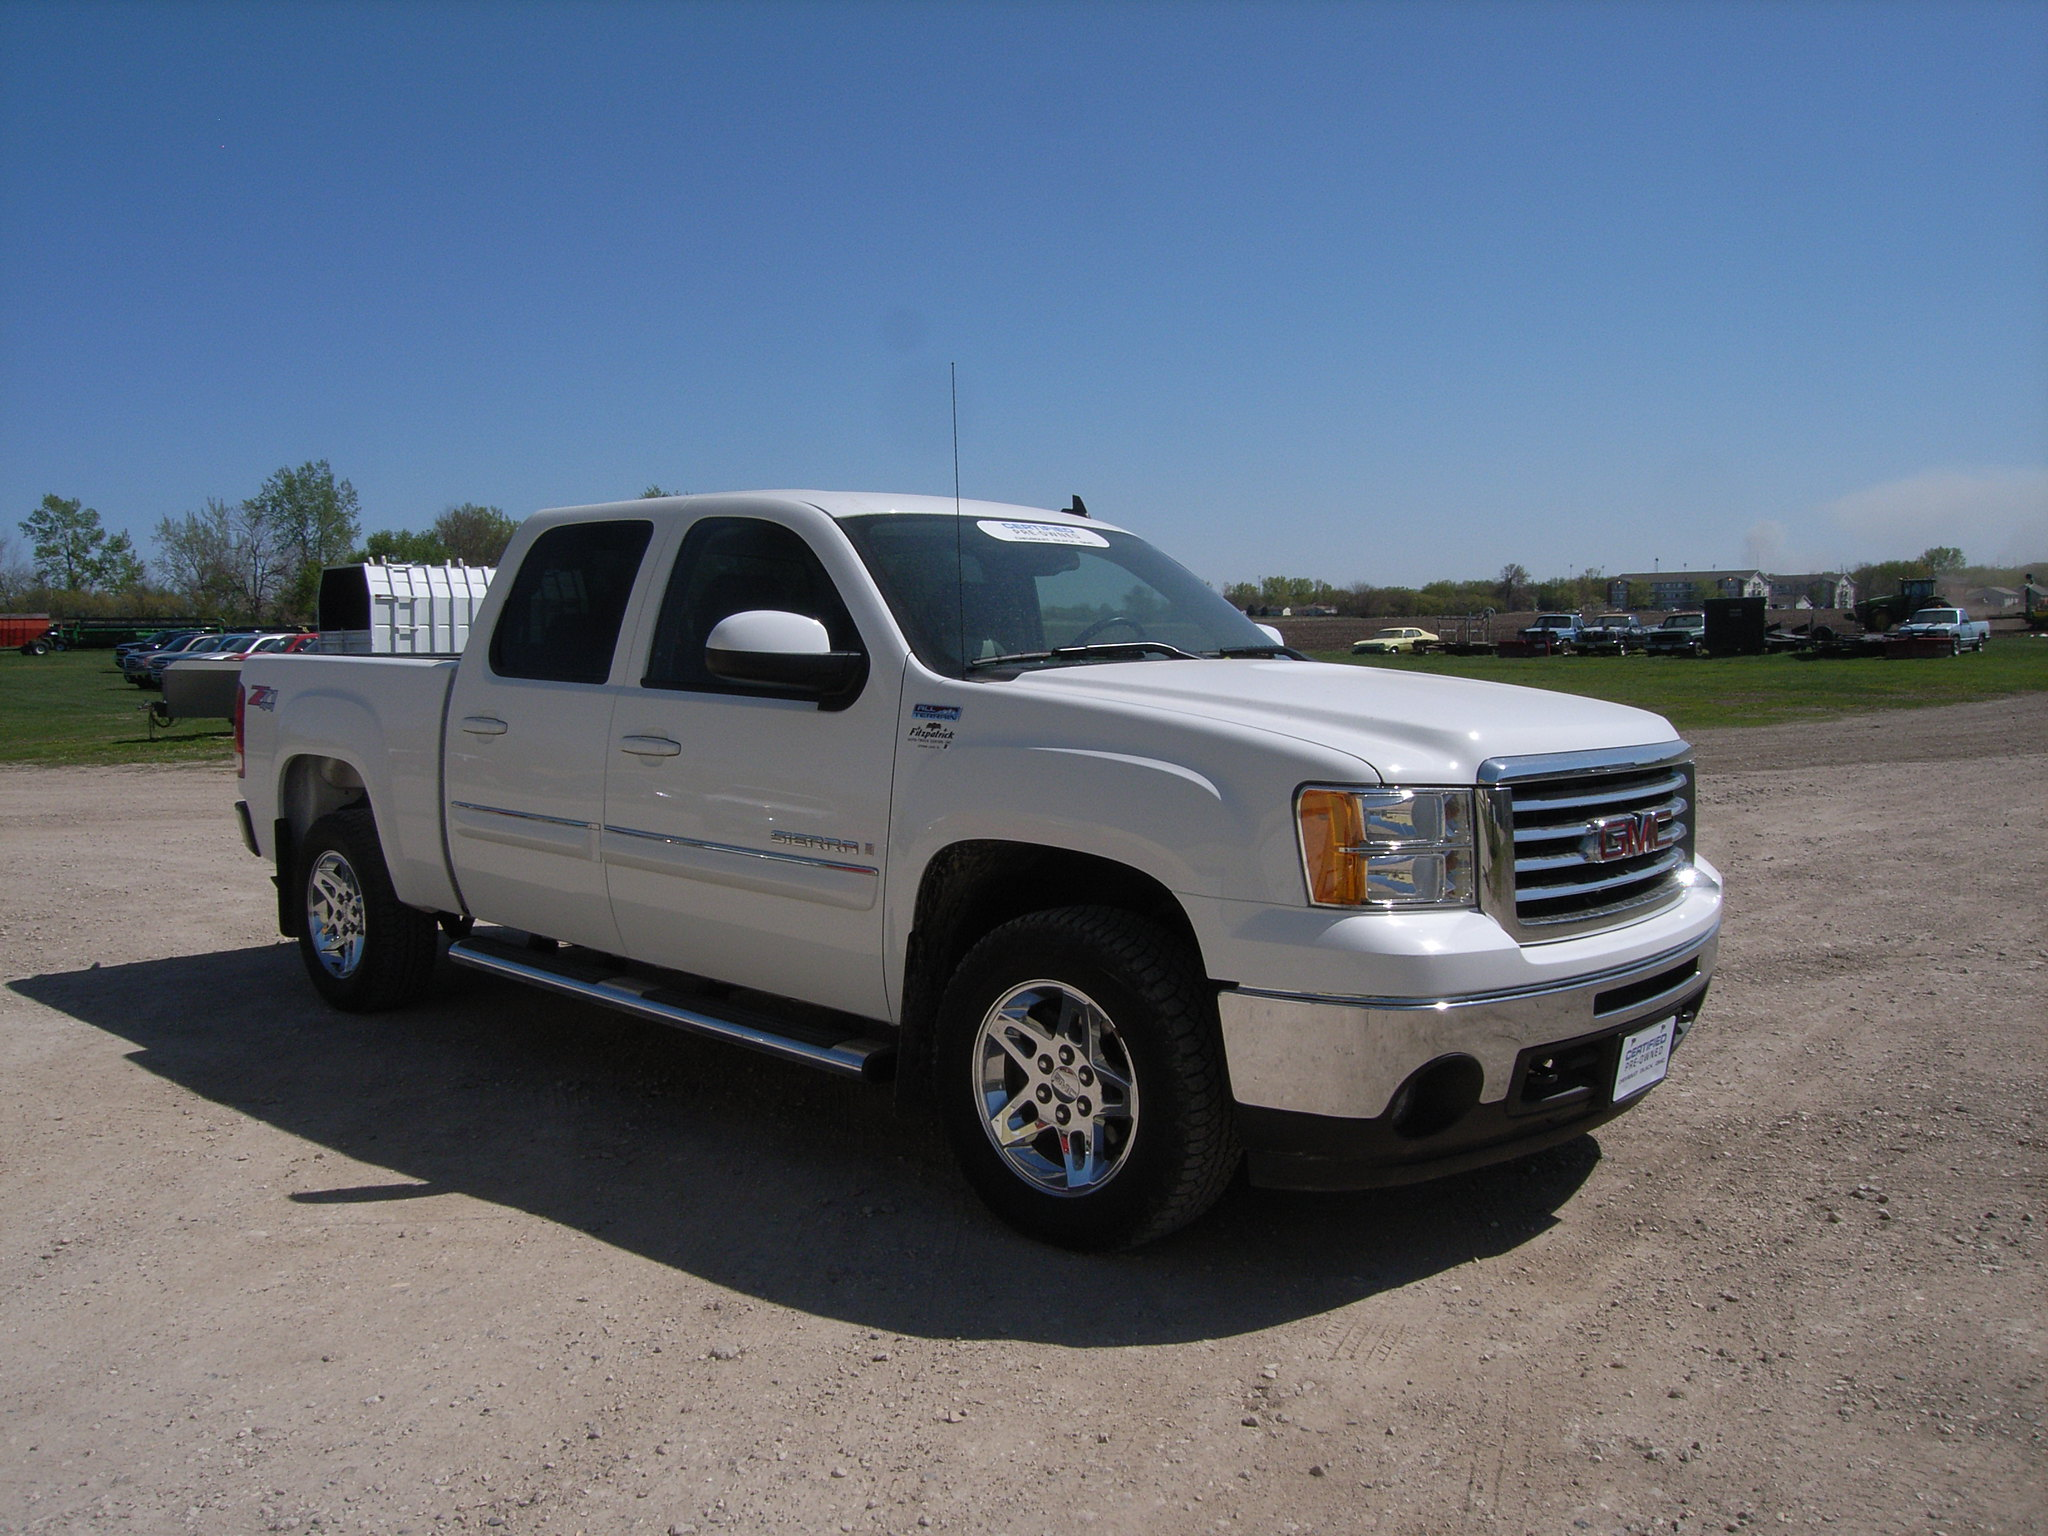 2009 gmc sierra crew cab white all terrain package for sale in storm lake iowa 3 flickr. Black Bedroom Furniture Sets. Home Design Ideas